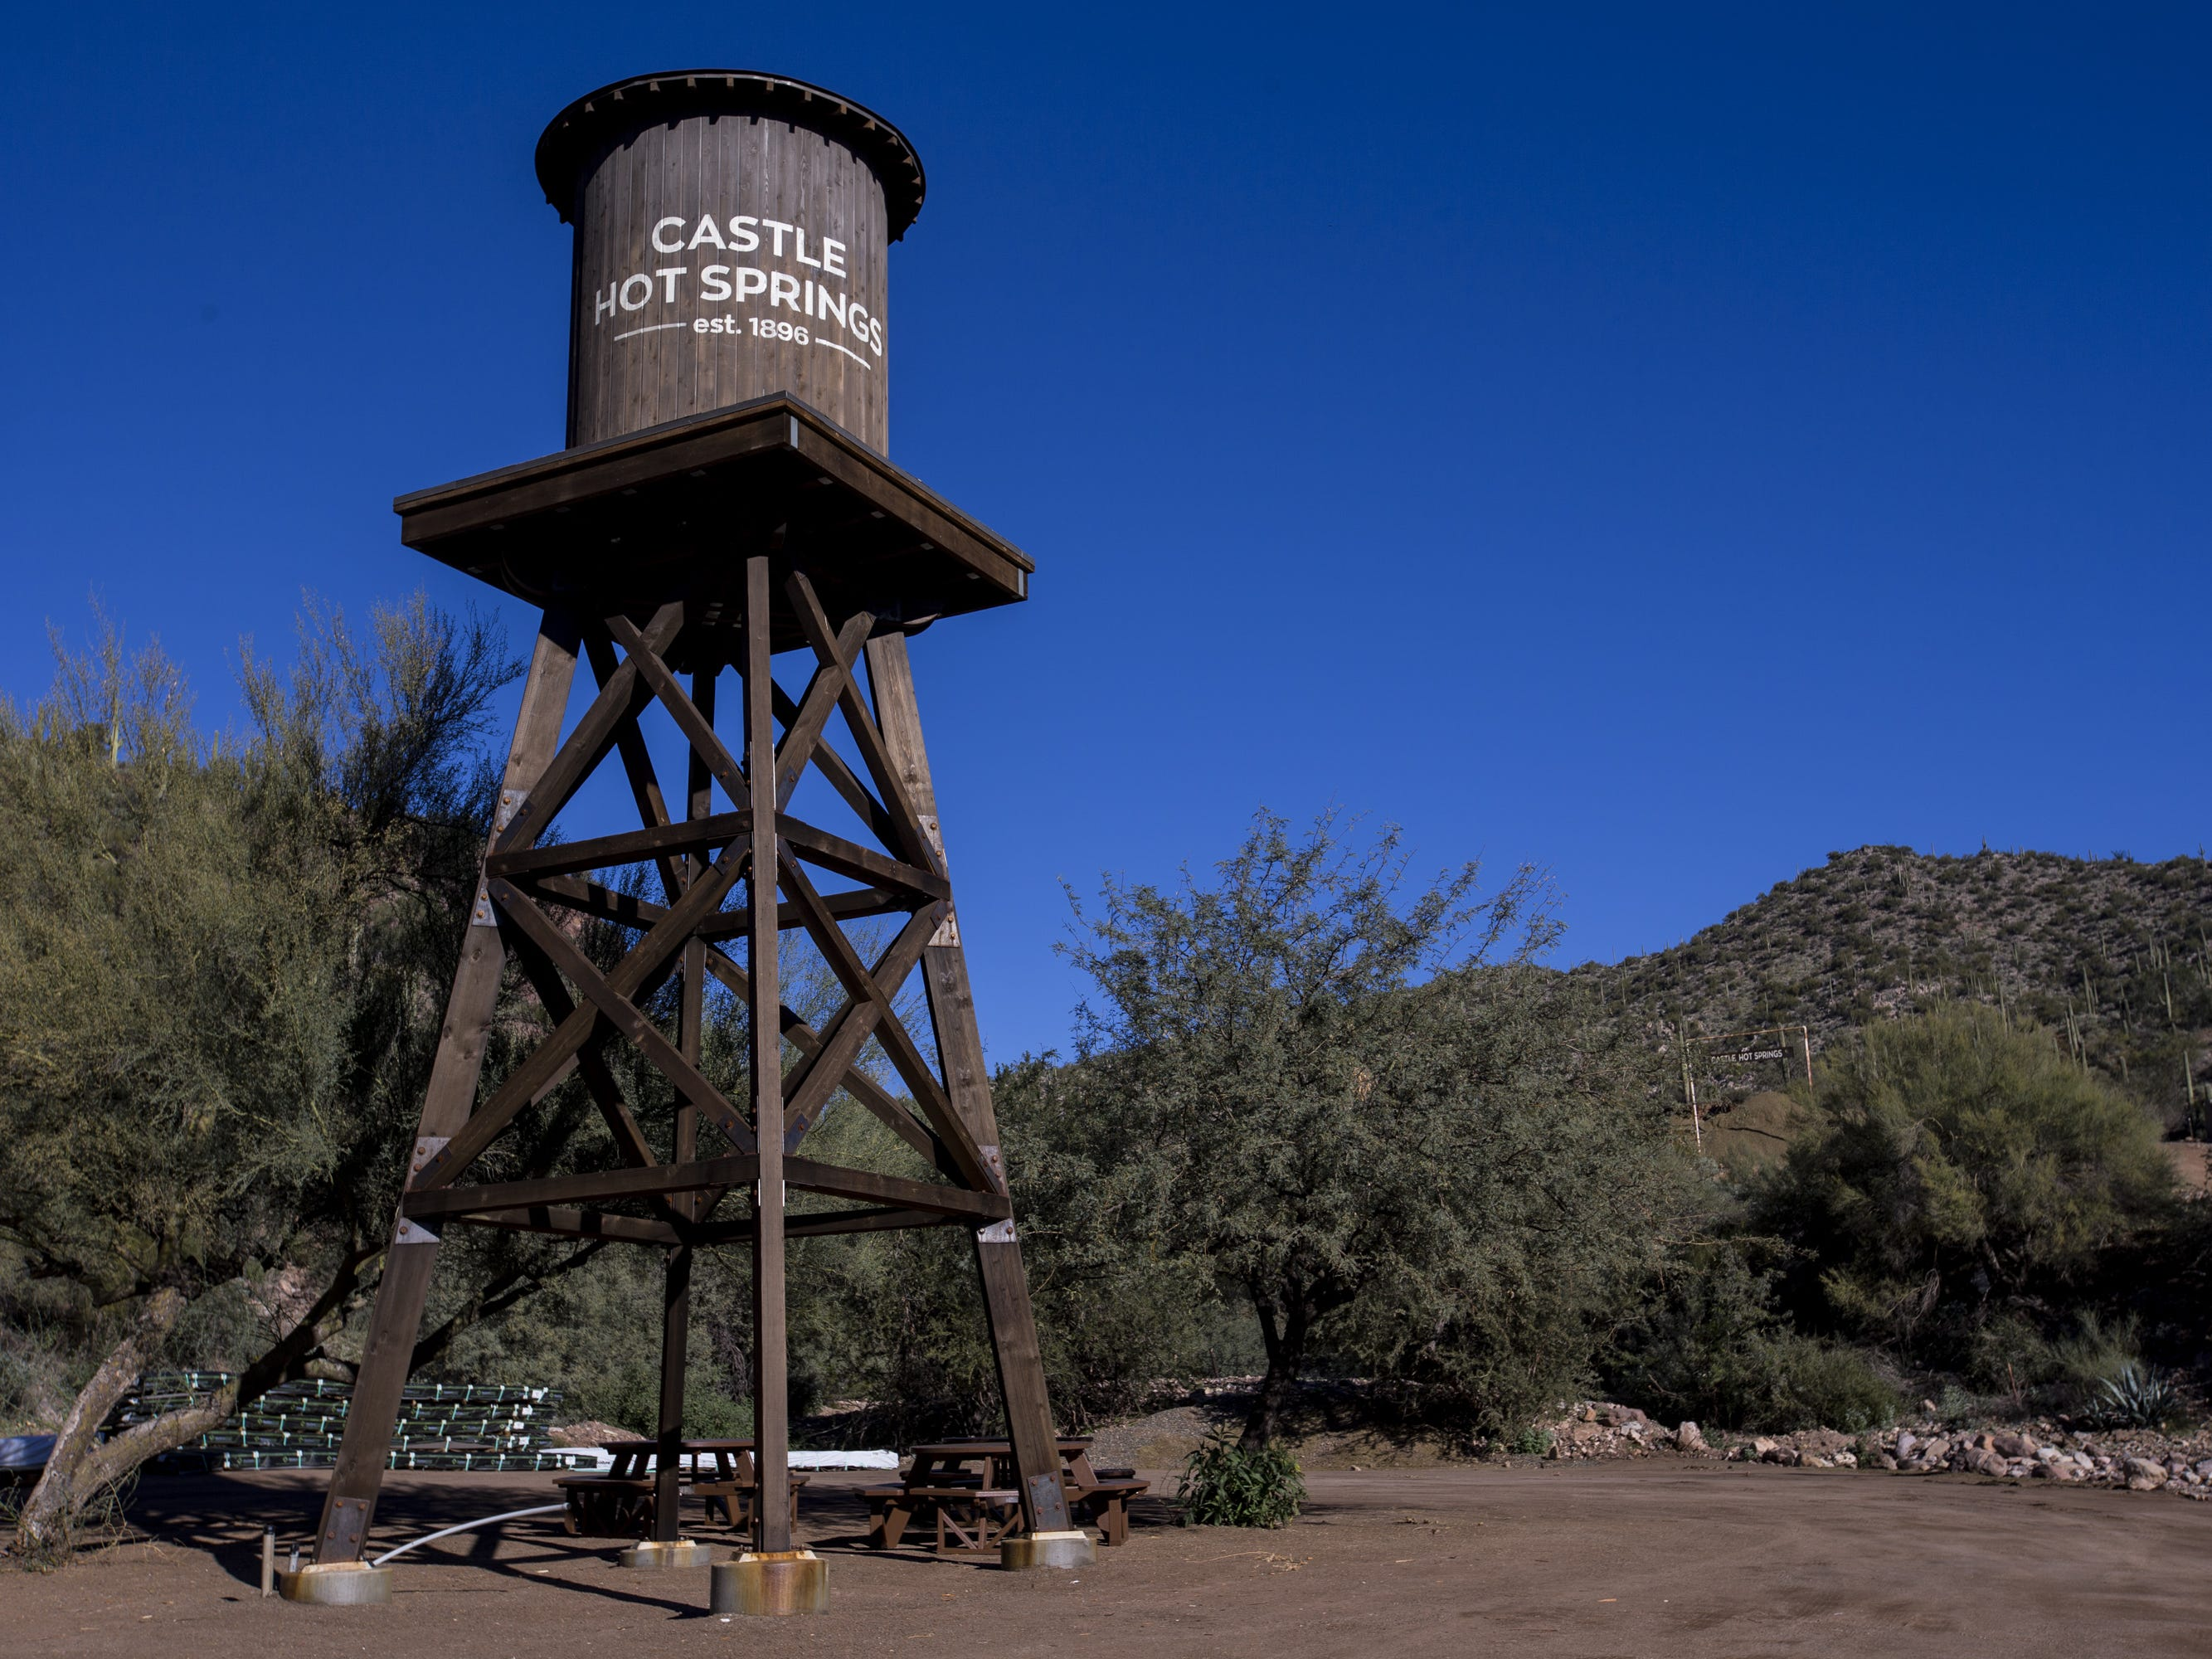 A water tower is pictured during a private preview of the newly renovated Castle Hot Springs resort on Saturday, Dec. 8, 2018, in Morristown, Ariz. It has been 50 years since the resort has hosted any guests.